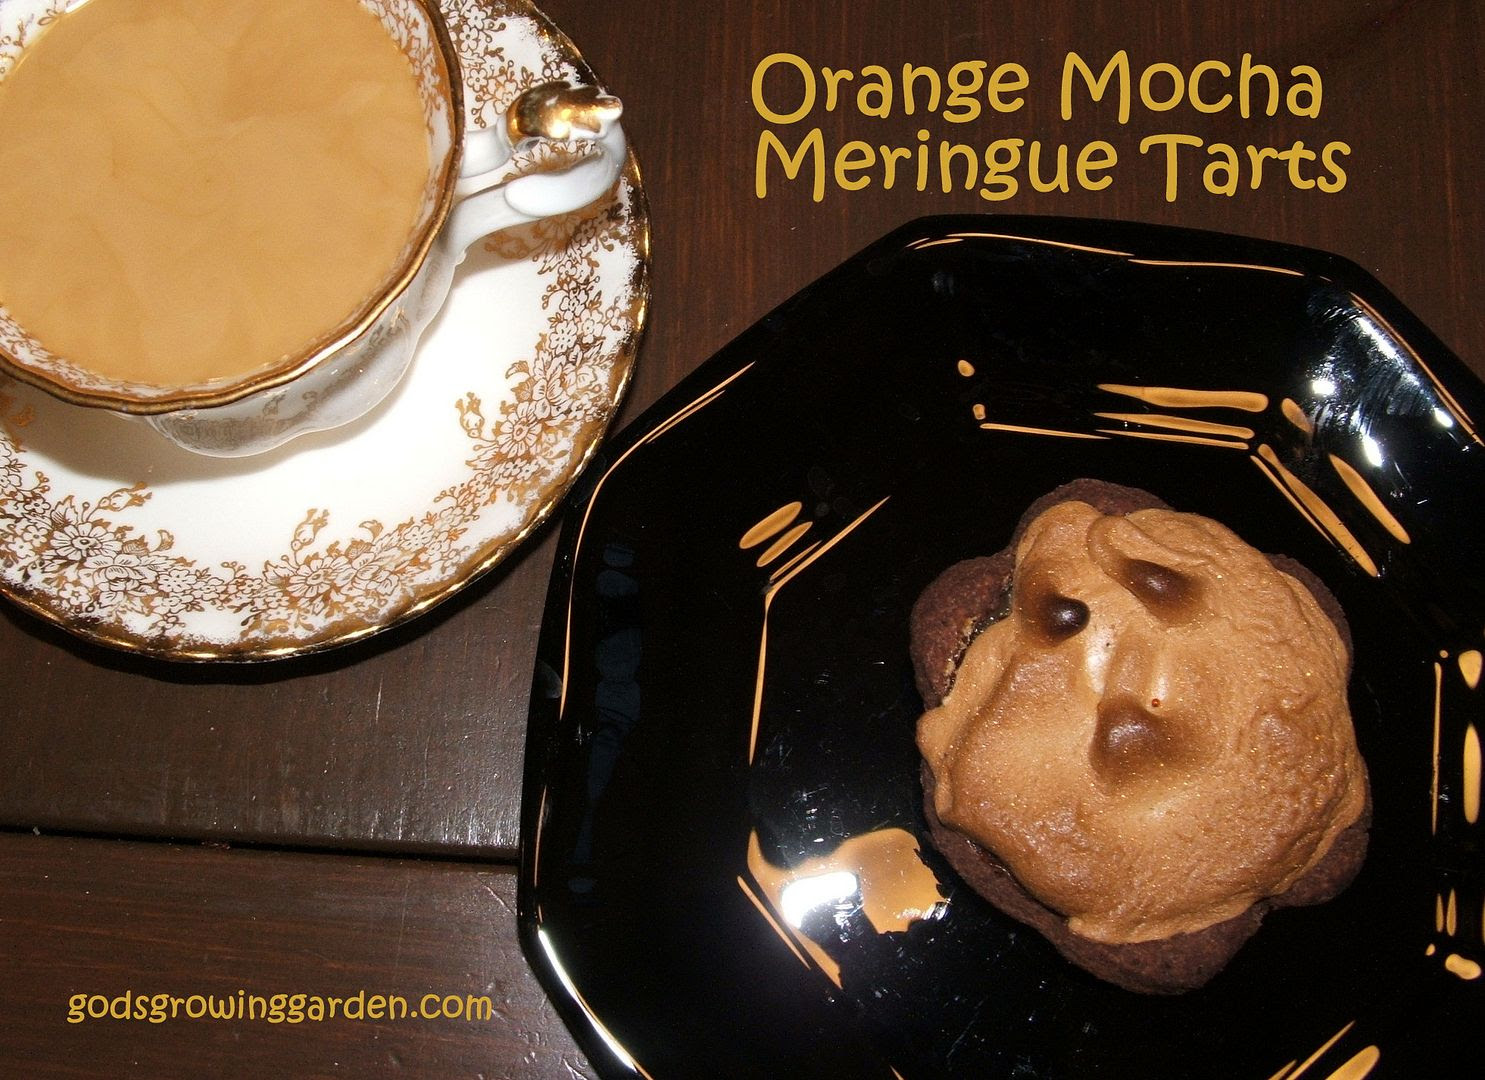 Orange Mocha Meringue Tarts, by Angie Ouellette-Towergodsgrowinggarden.com